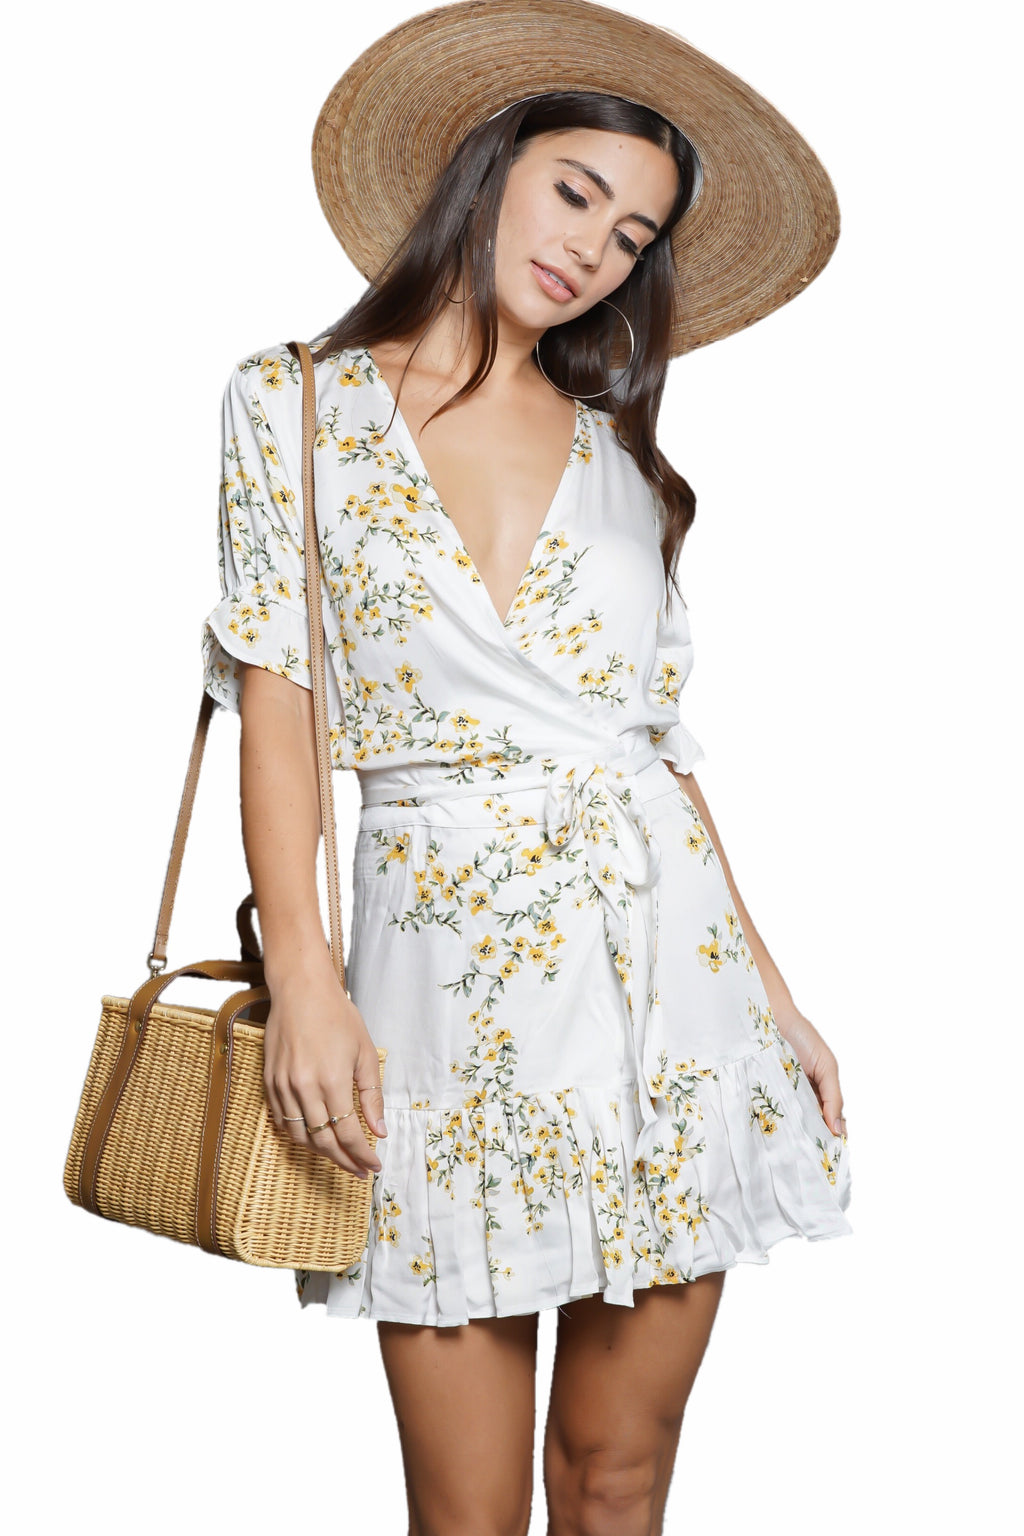 Stillwater Little Goddess Mini Dress